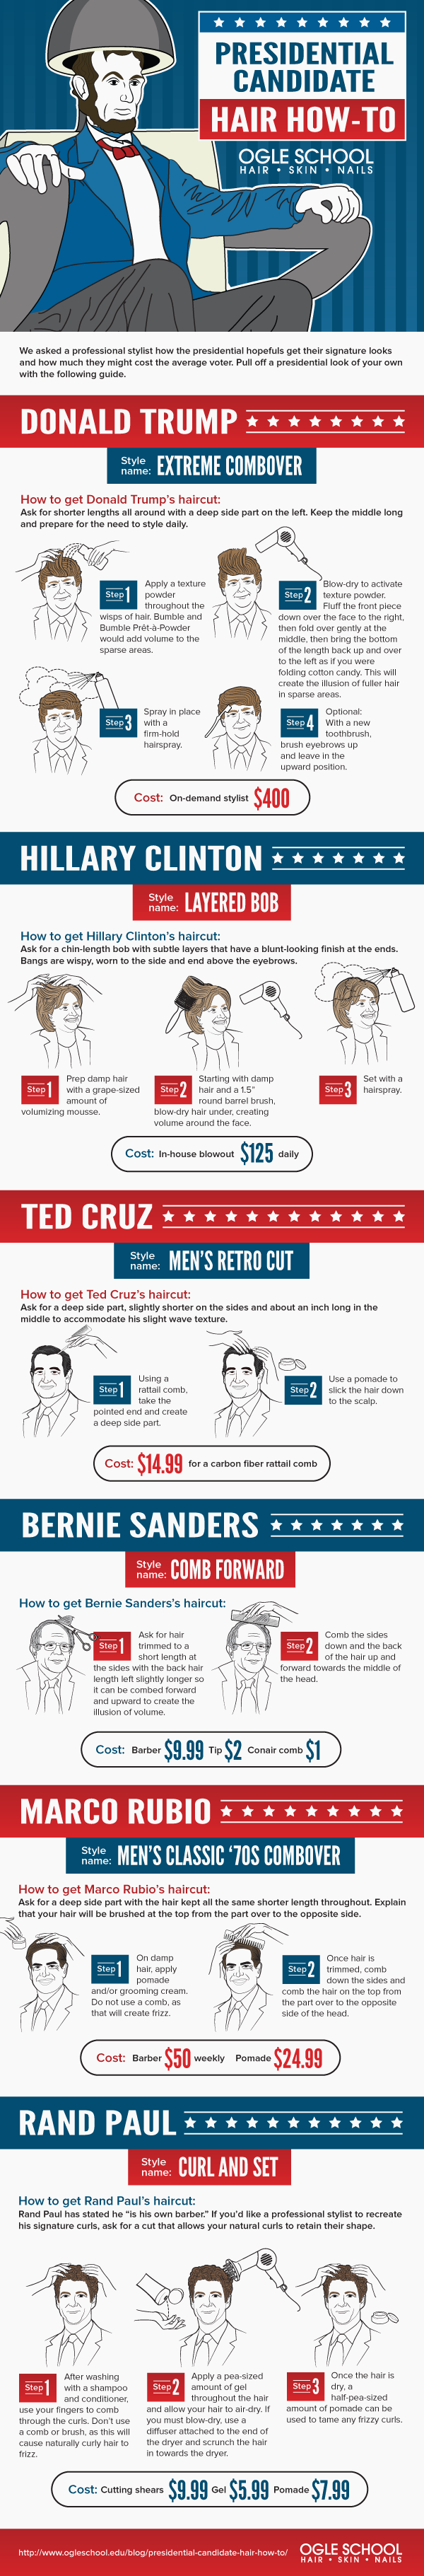 Presidential Hair Styles Guide #infographic